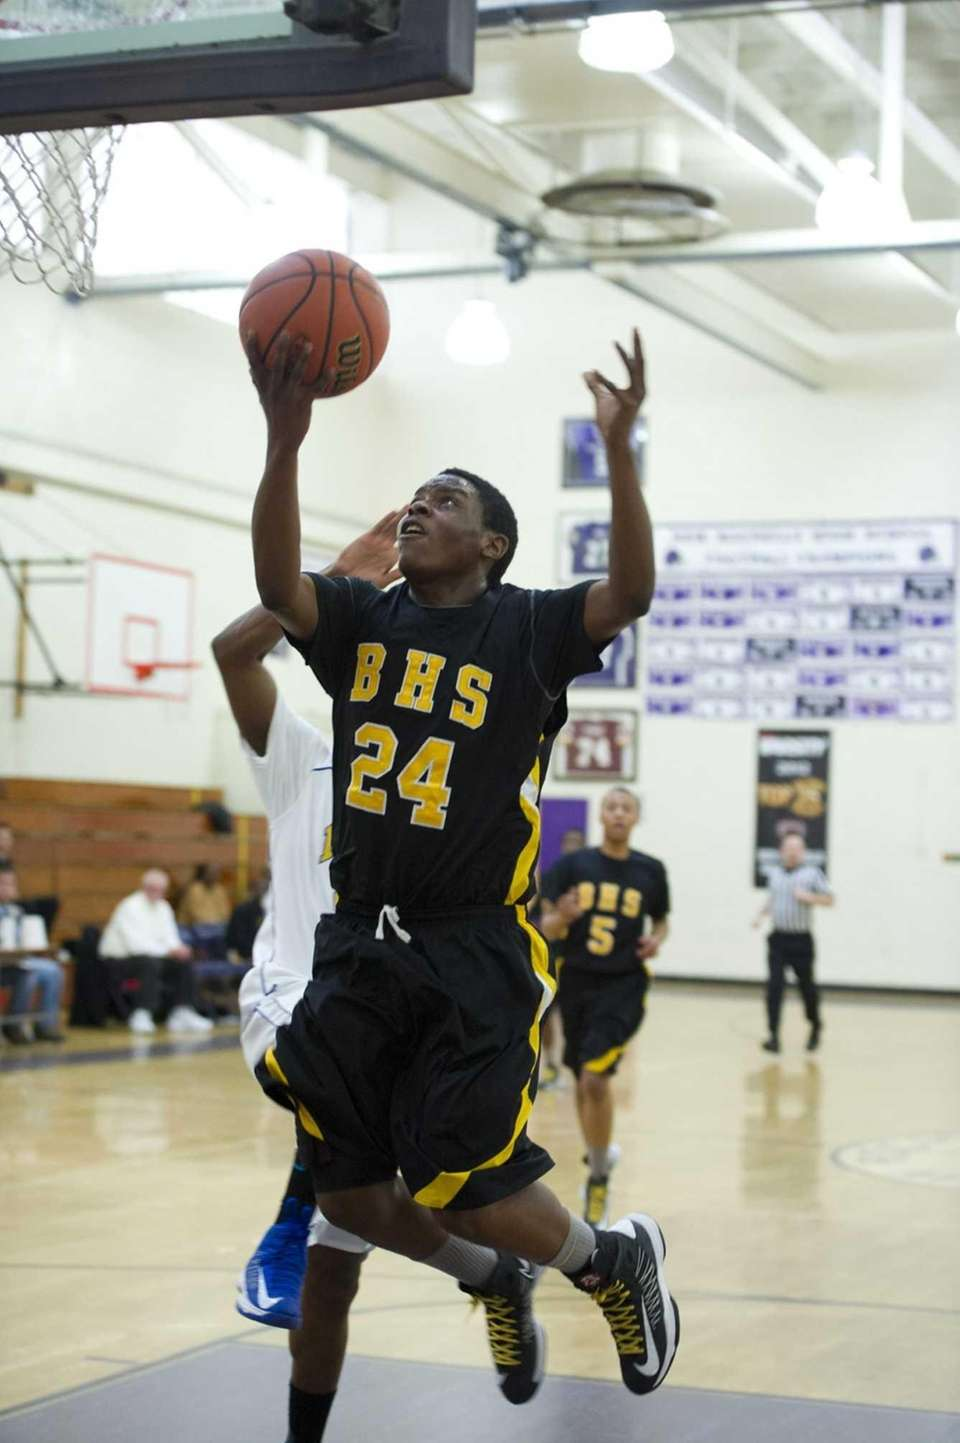 Anajae Lamb of Bridgehampton shoots at the basket